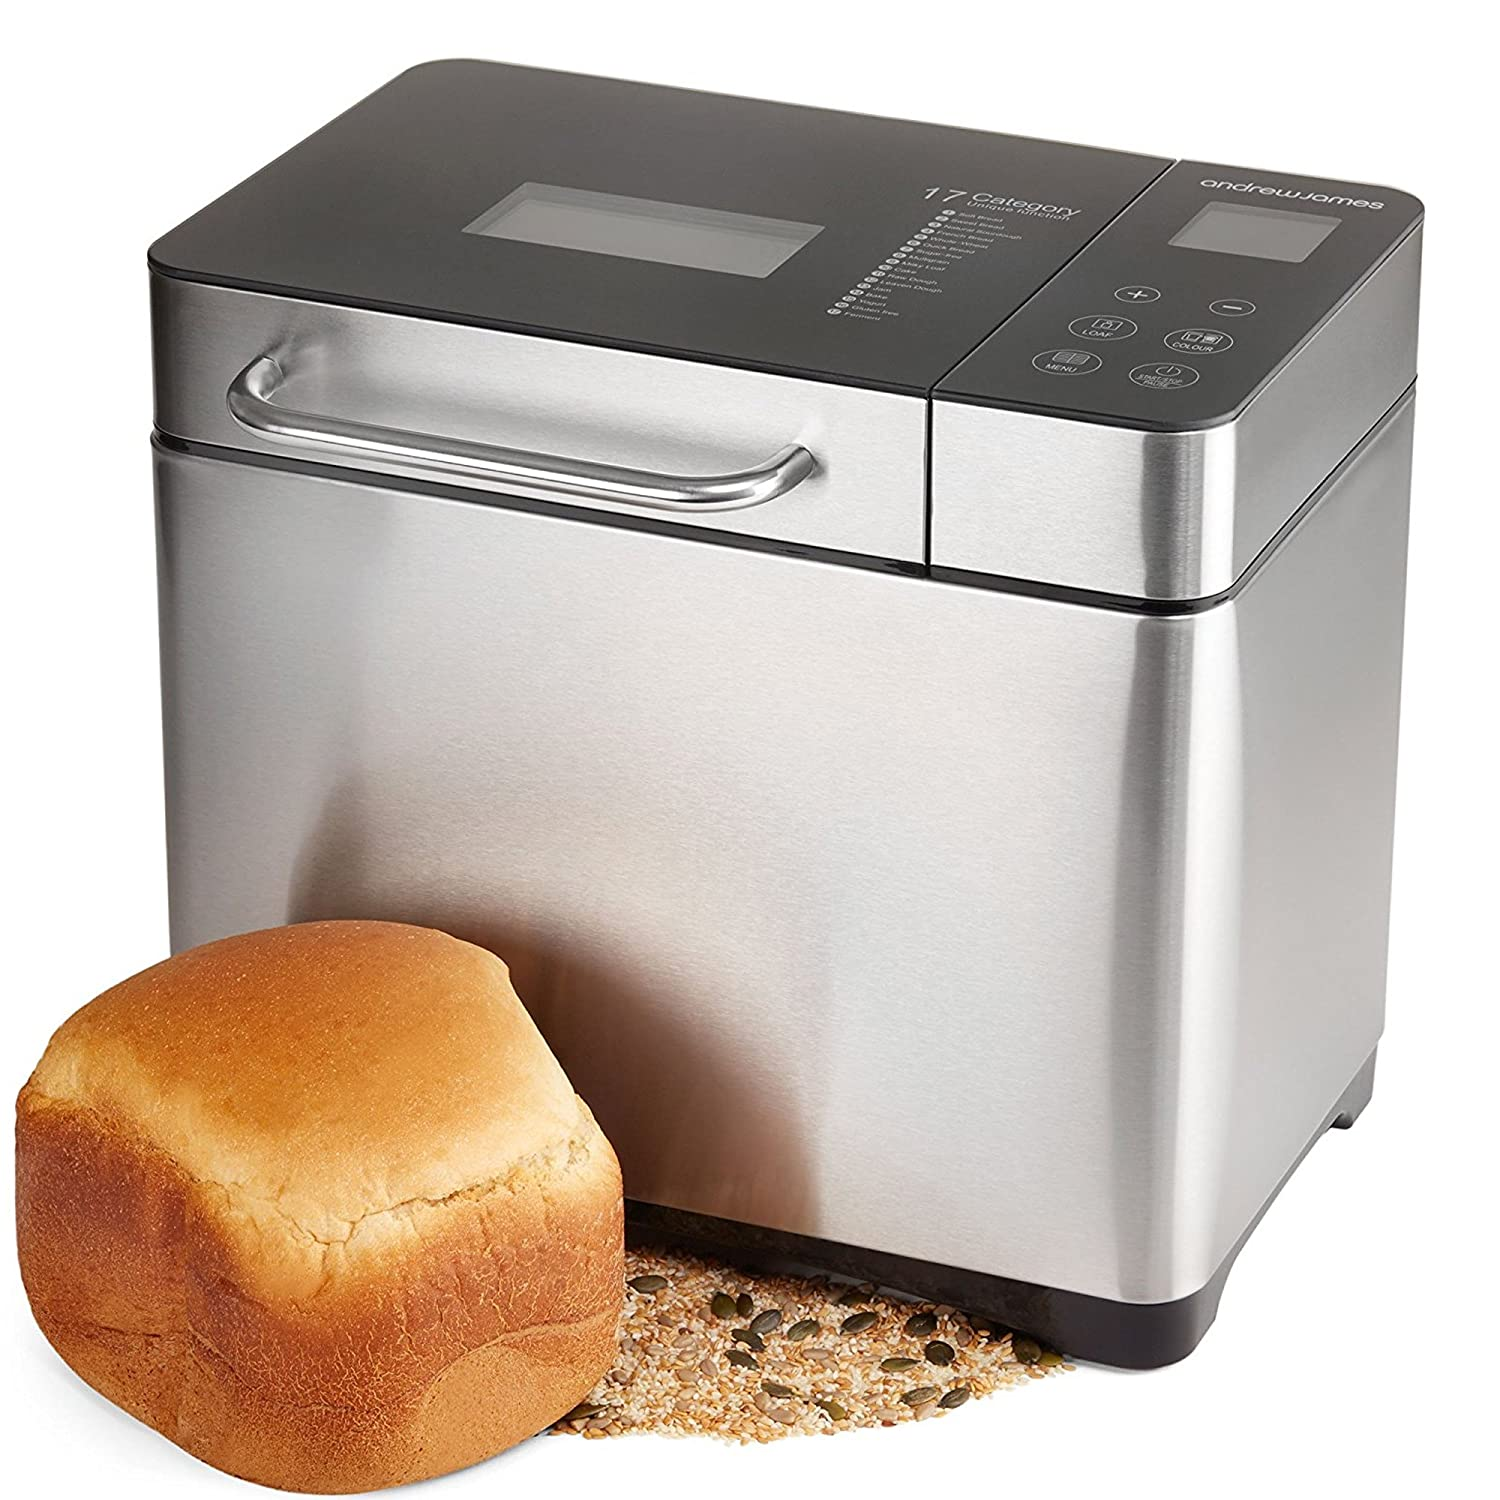 Image result for bread maker